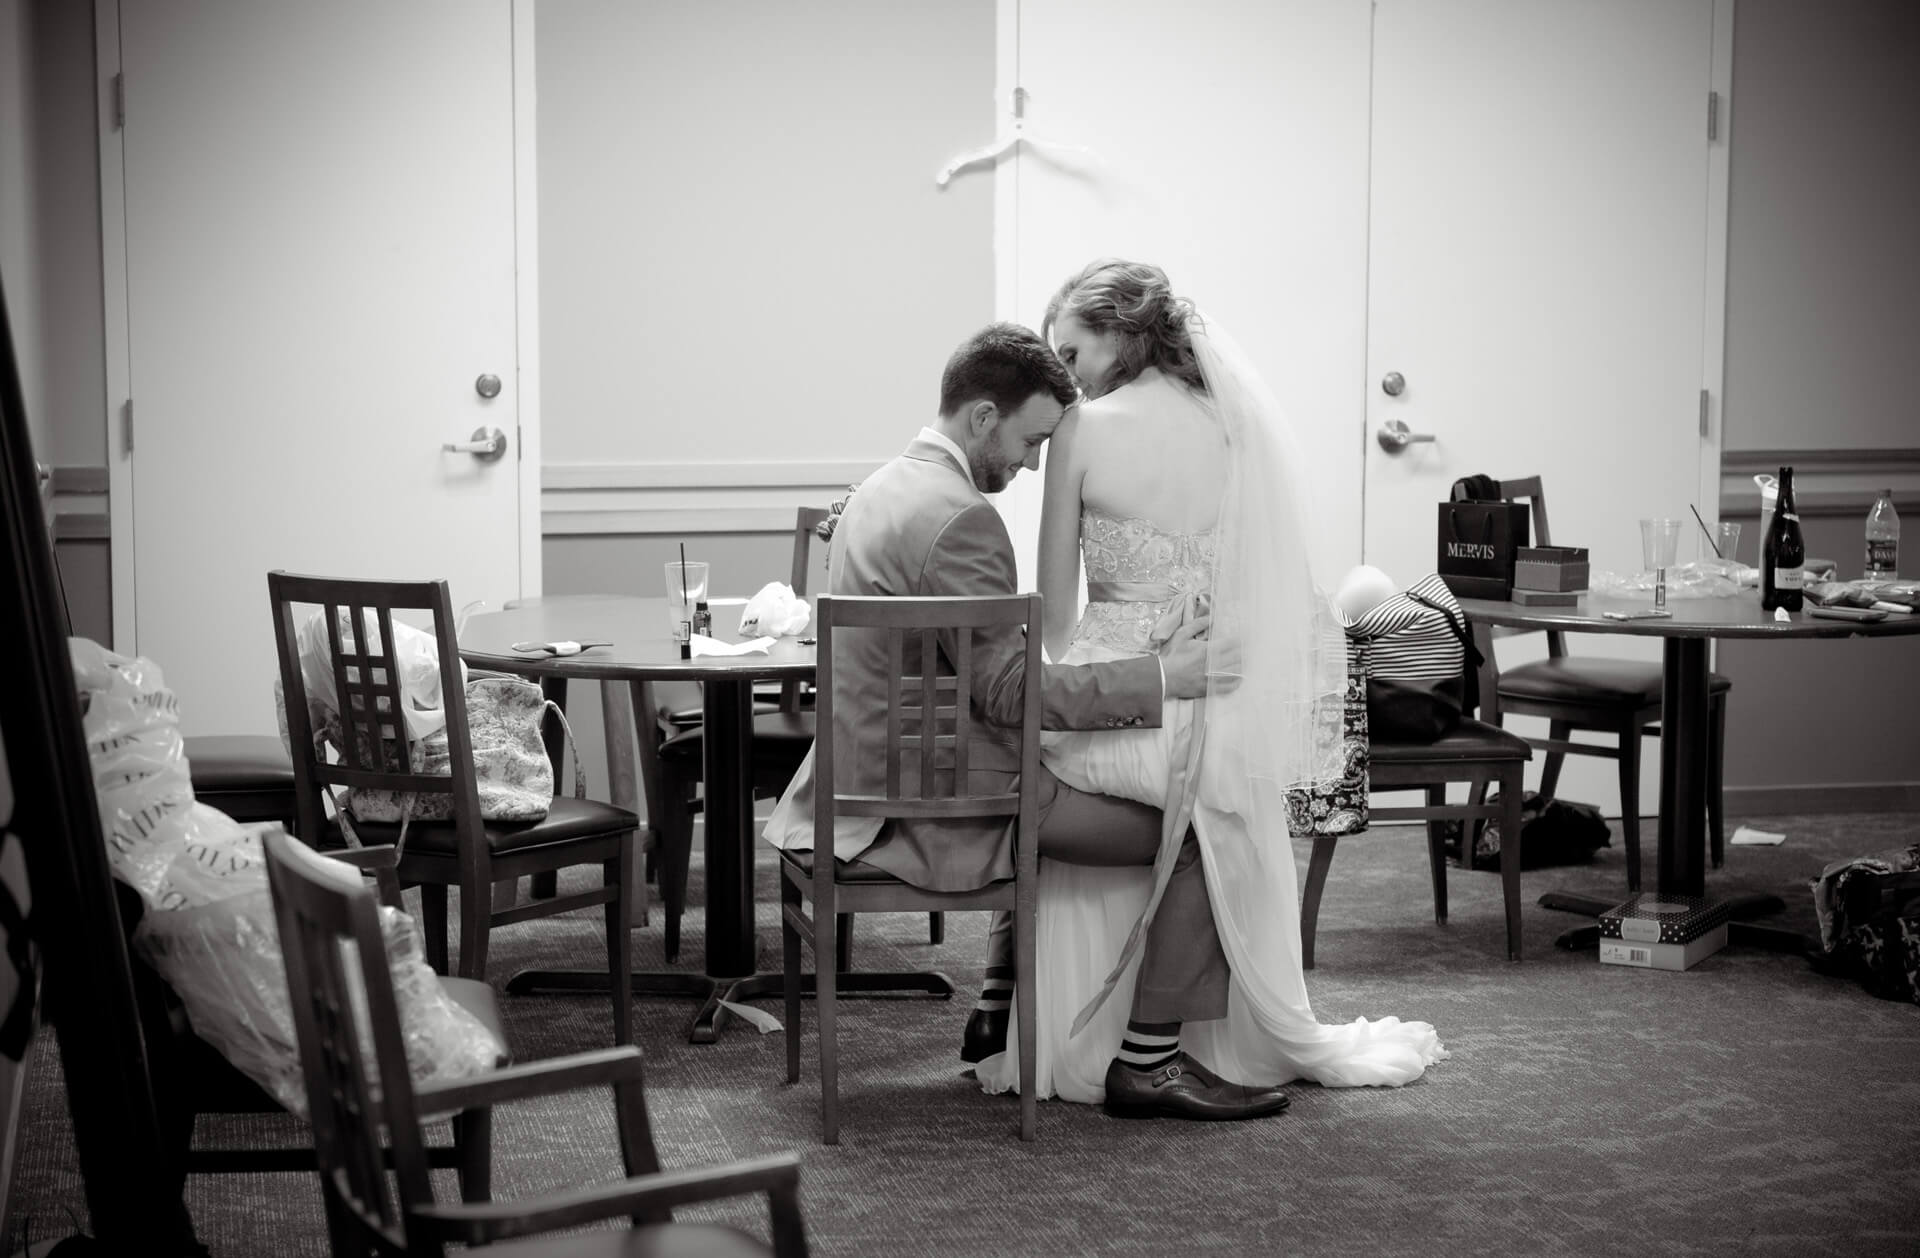 Documentary wedding photo of a bride and groom stealing away a few quiet moments away from their guests at the Stonebridge Golf Course in Ann Arbor, Michigan.